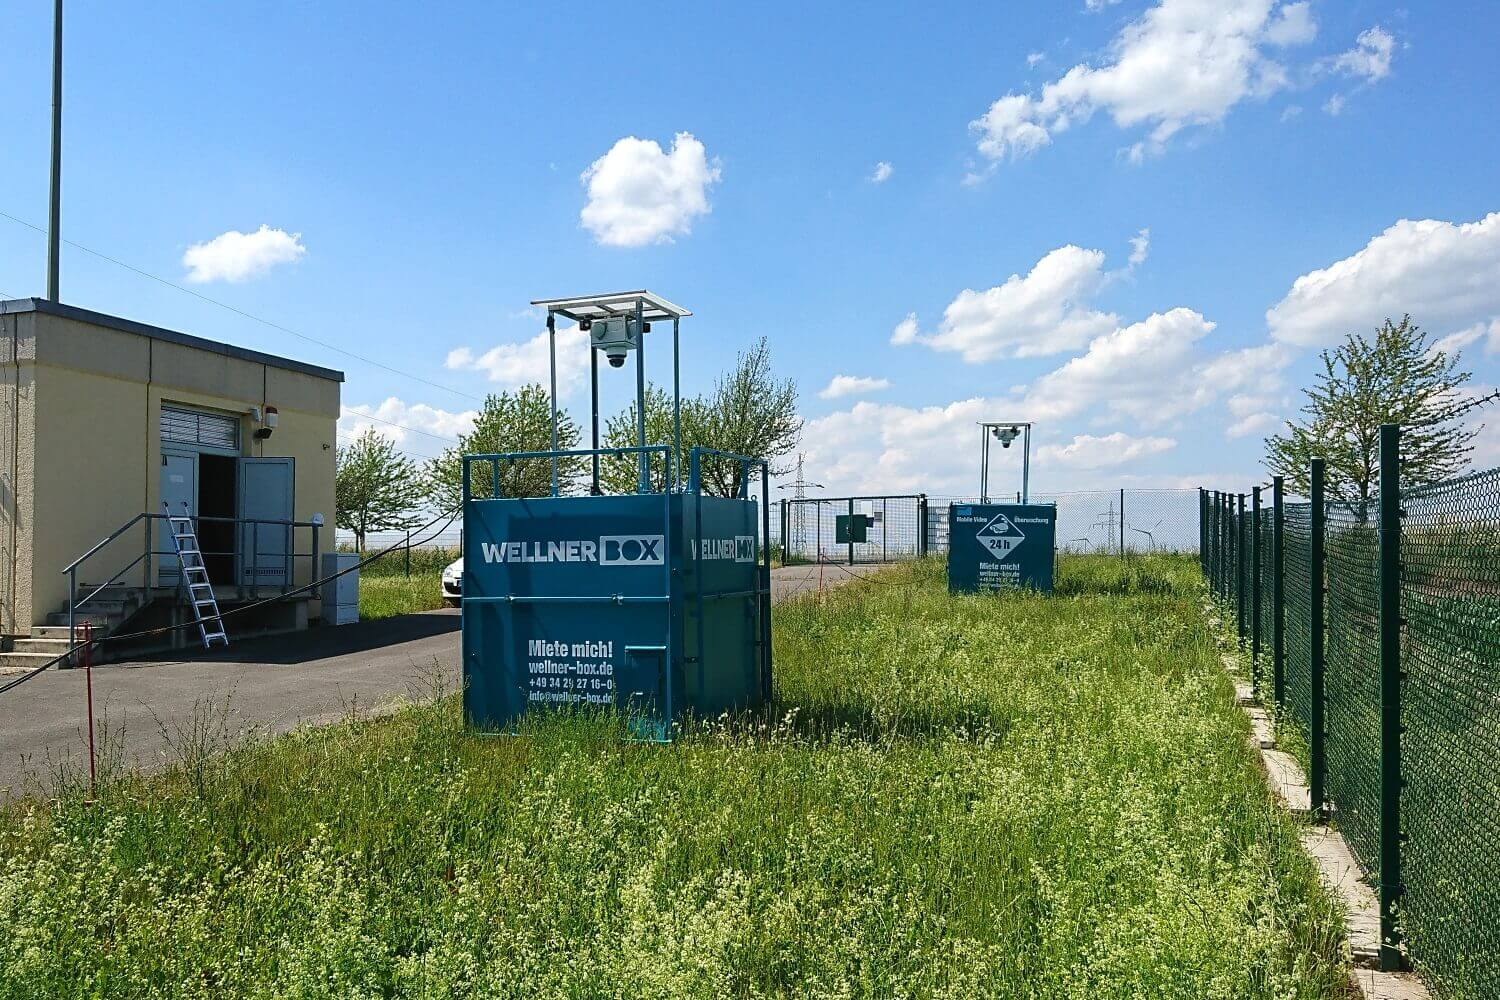 Combined against sabotage and theft - WellnerBOXes in a transformer station